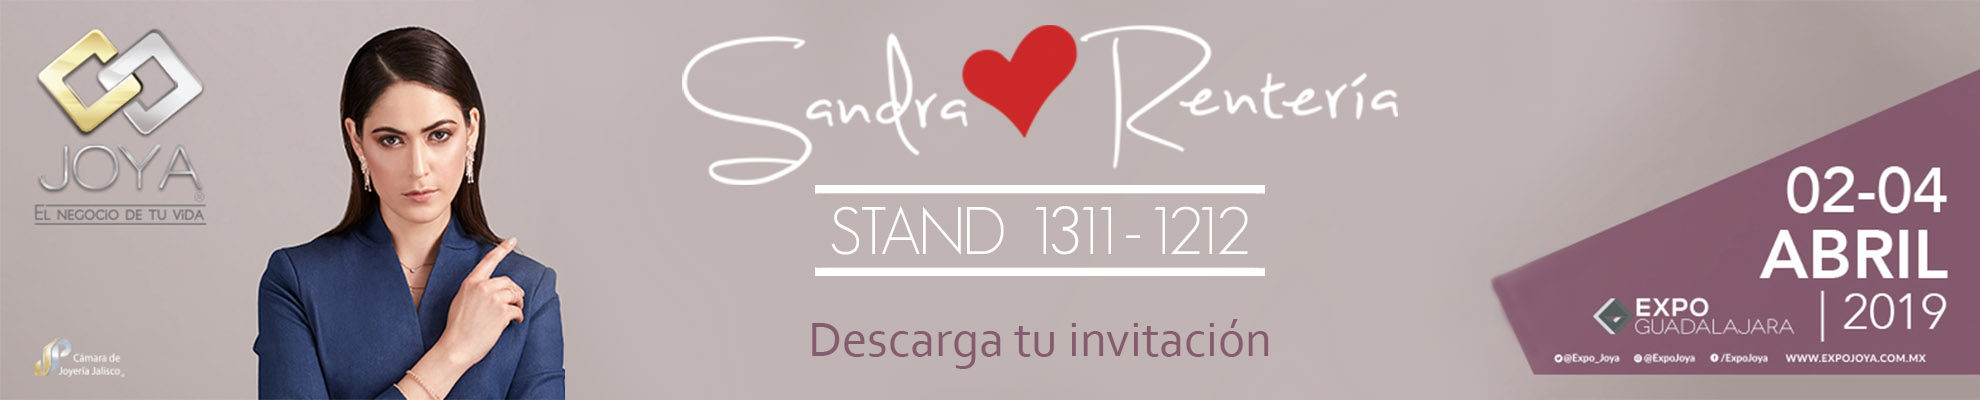 invitacion expo joya abril